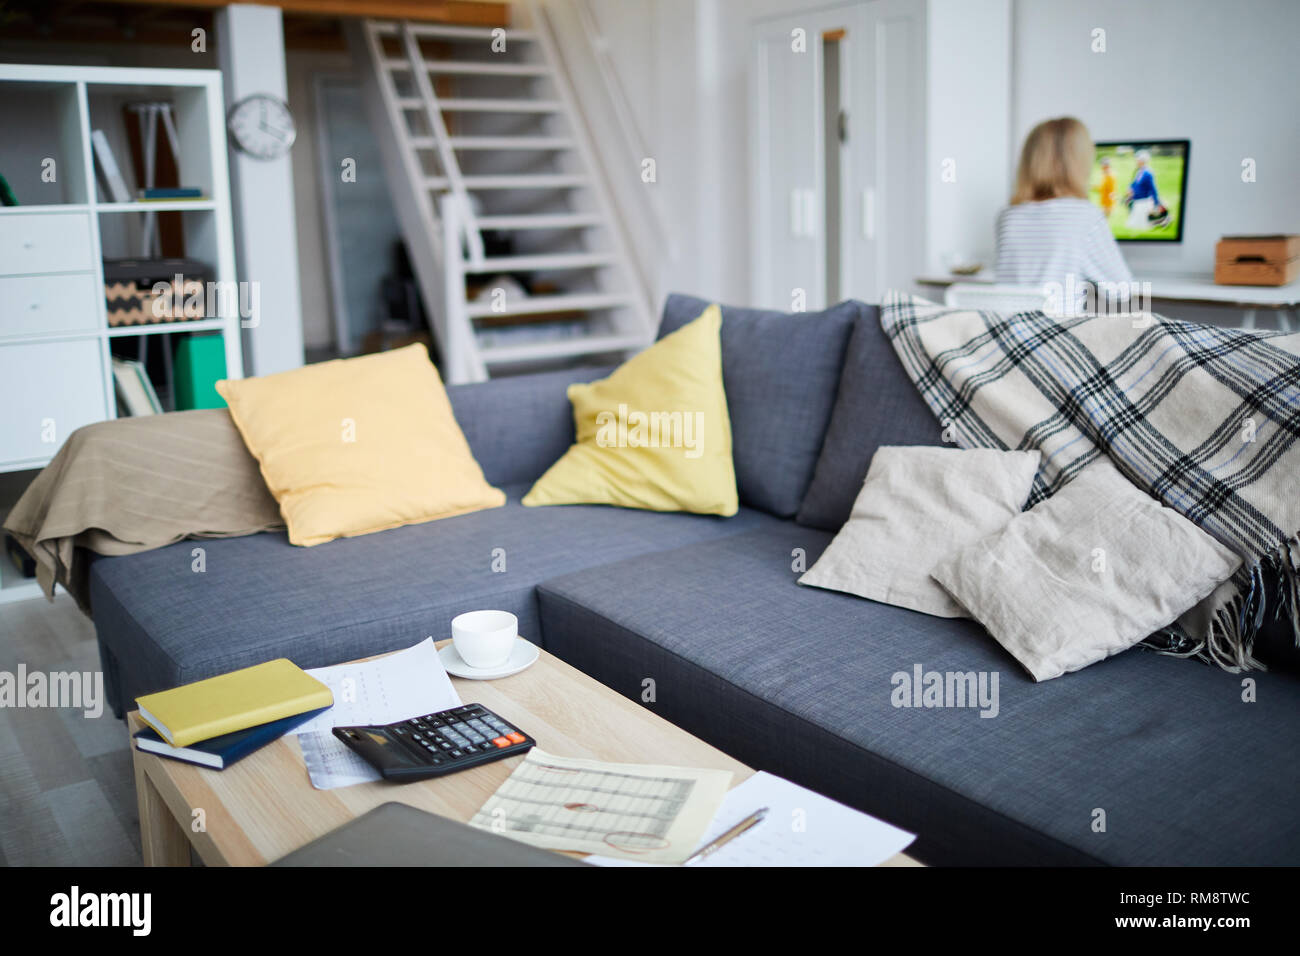 Couch in Living Room - Stock Image